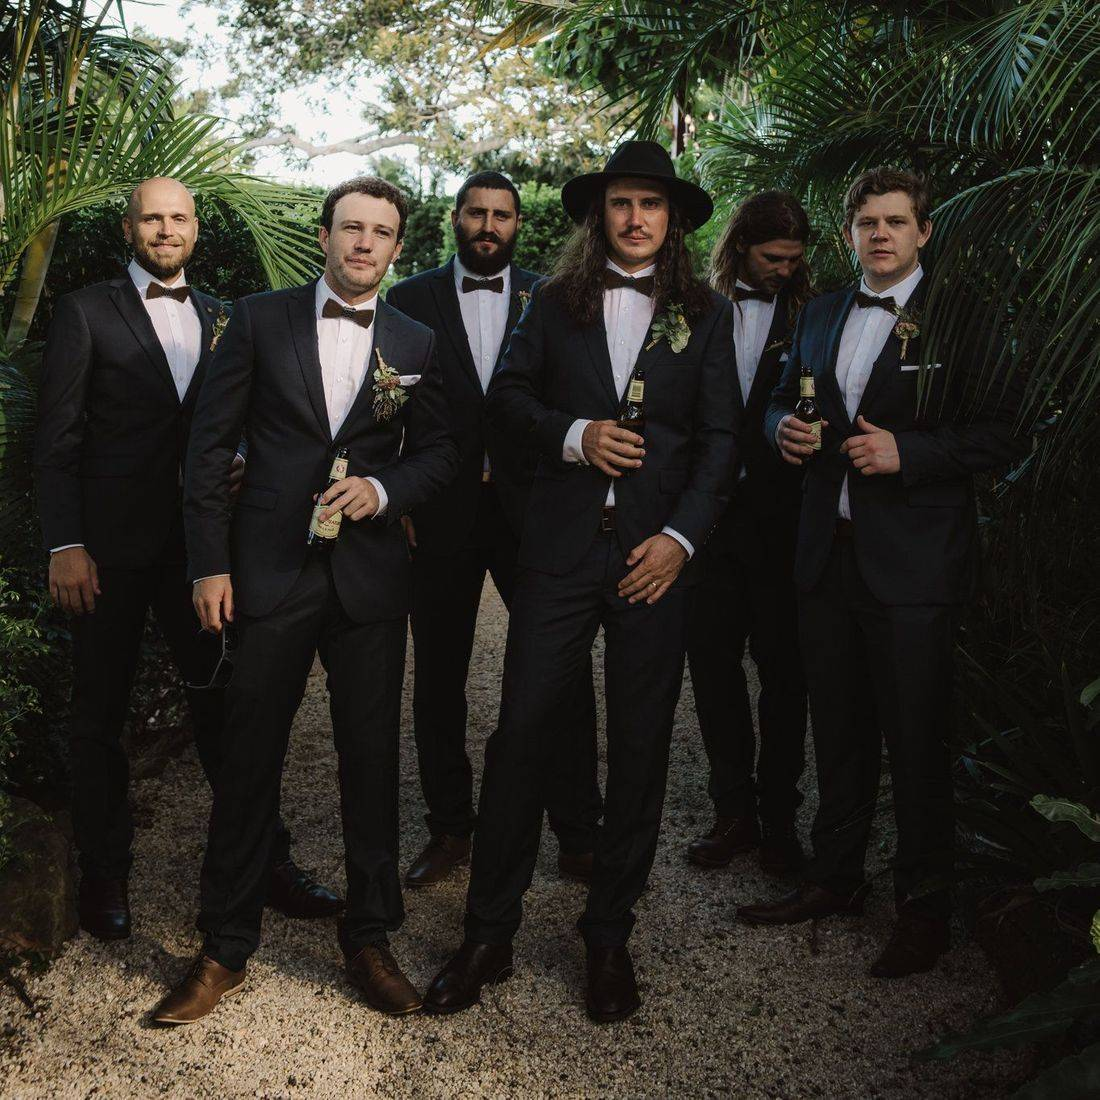 Nick and his groomsment